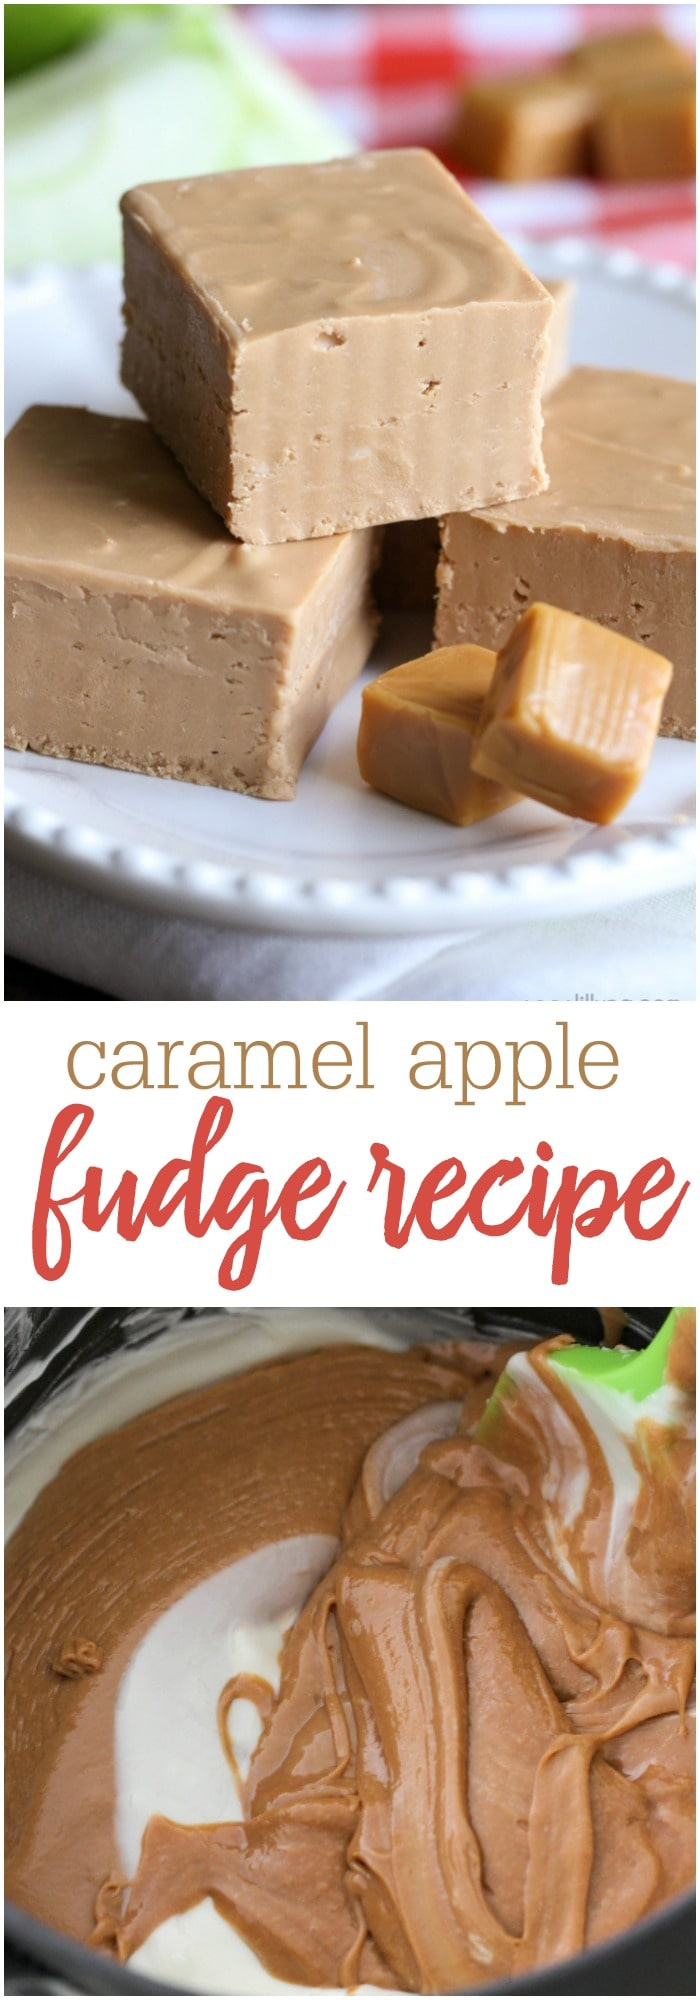 Fudge Recipe With Chocolate Chips And Frosting